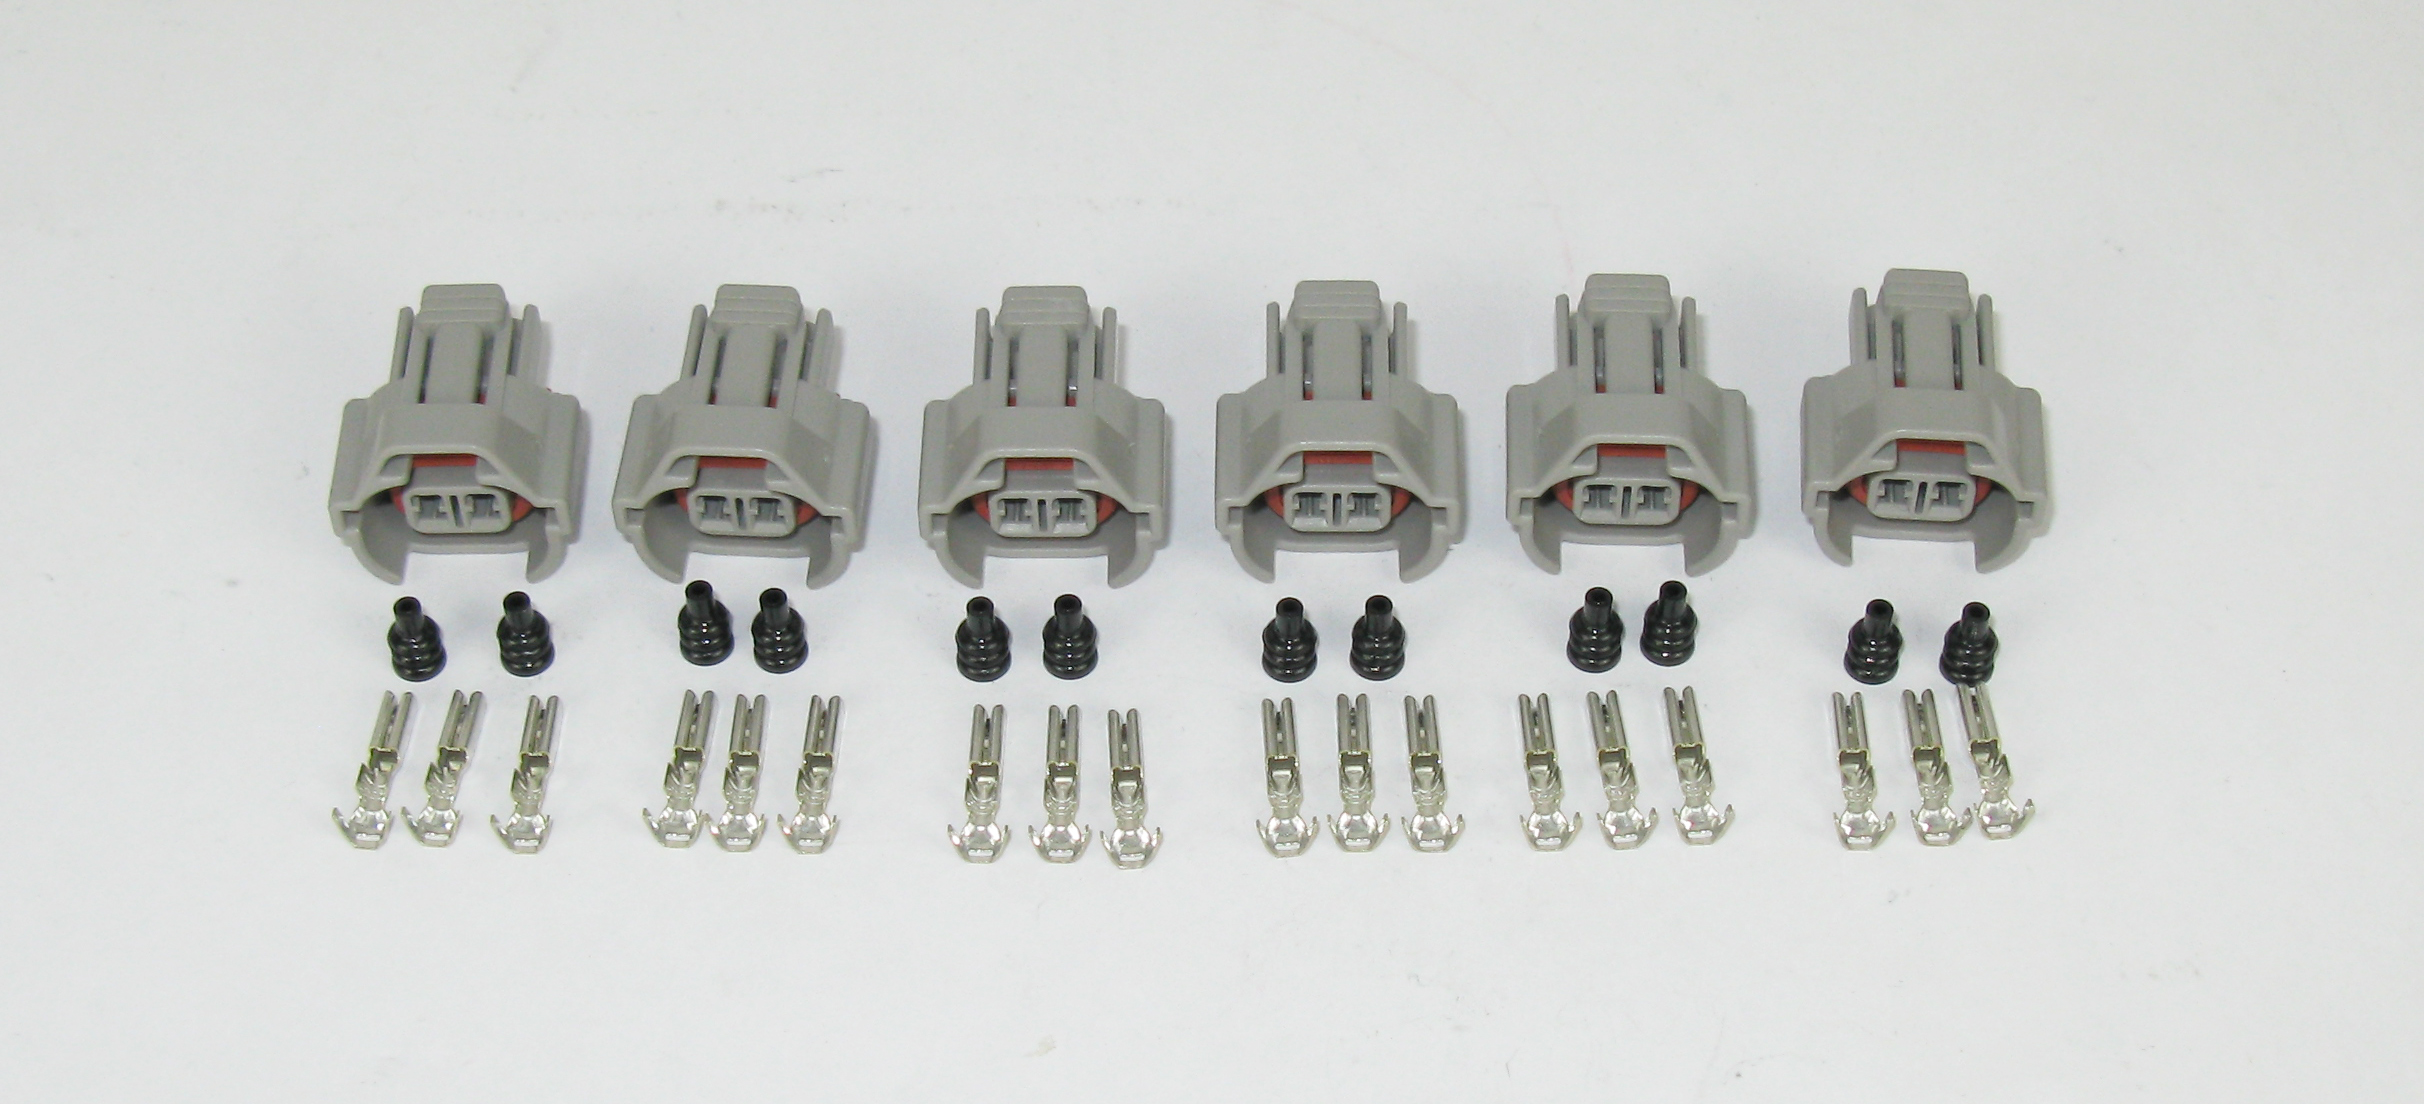 ID2000 / TOYOTA / NISSAN INJECTOR CONNECTOR KIT - 6 CYLINDER